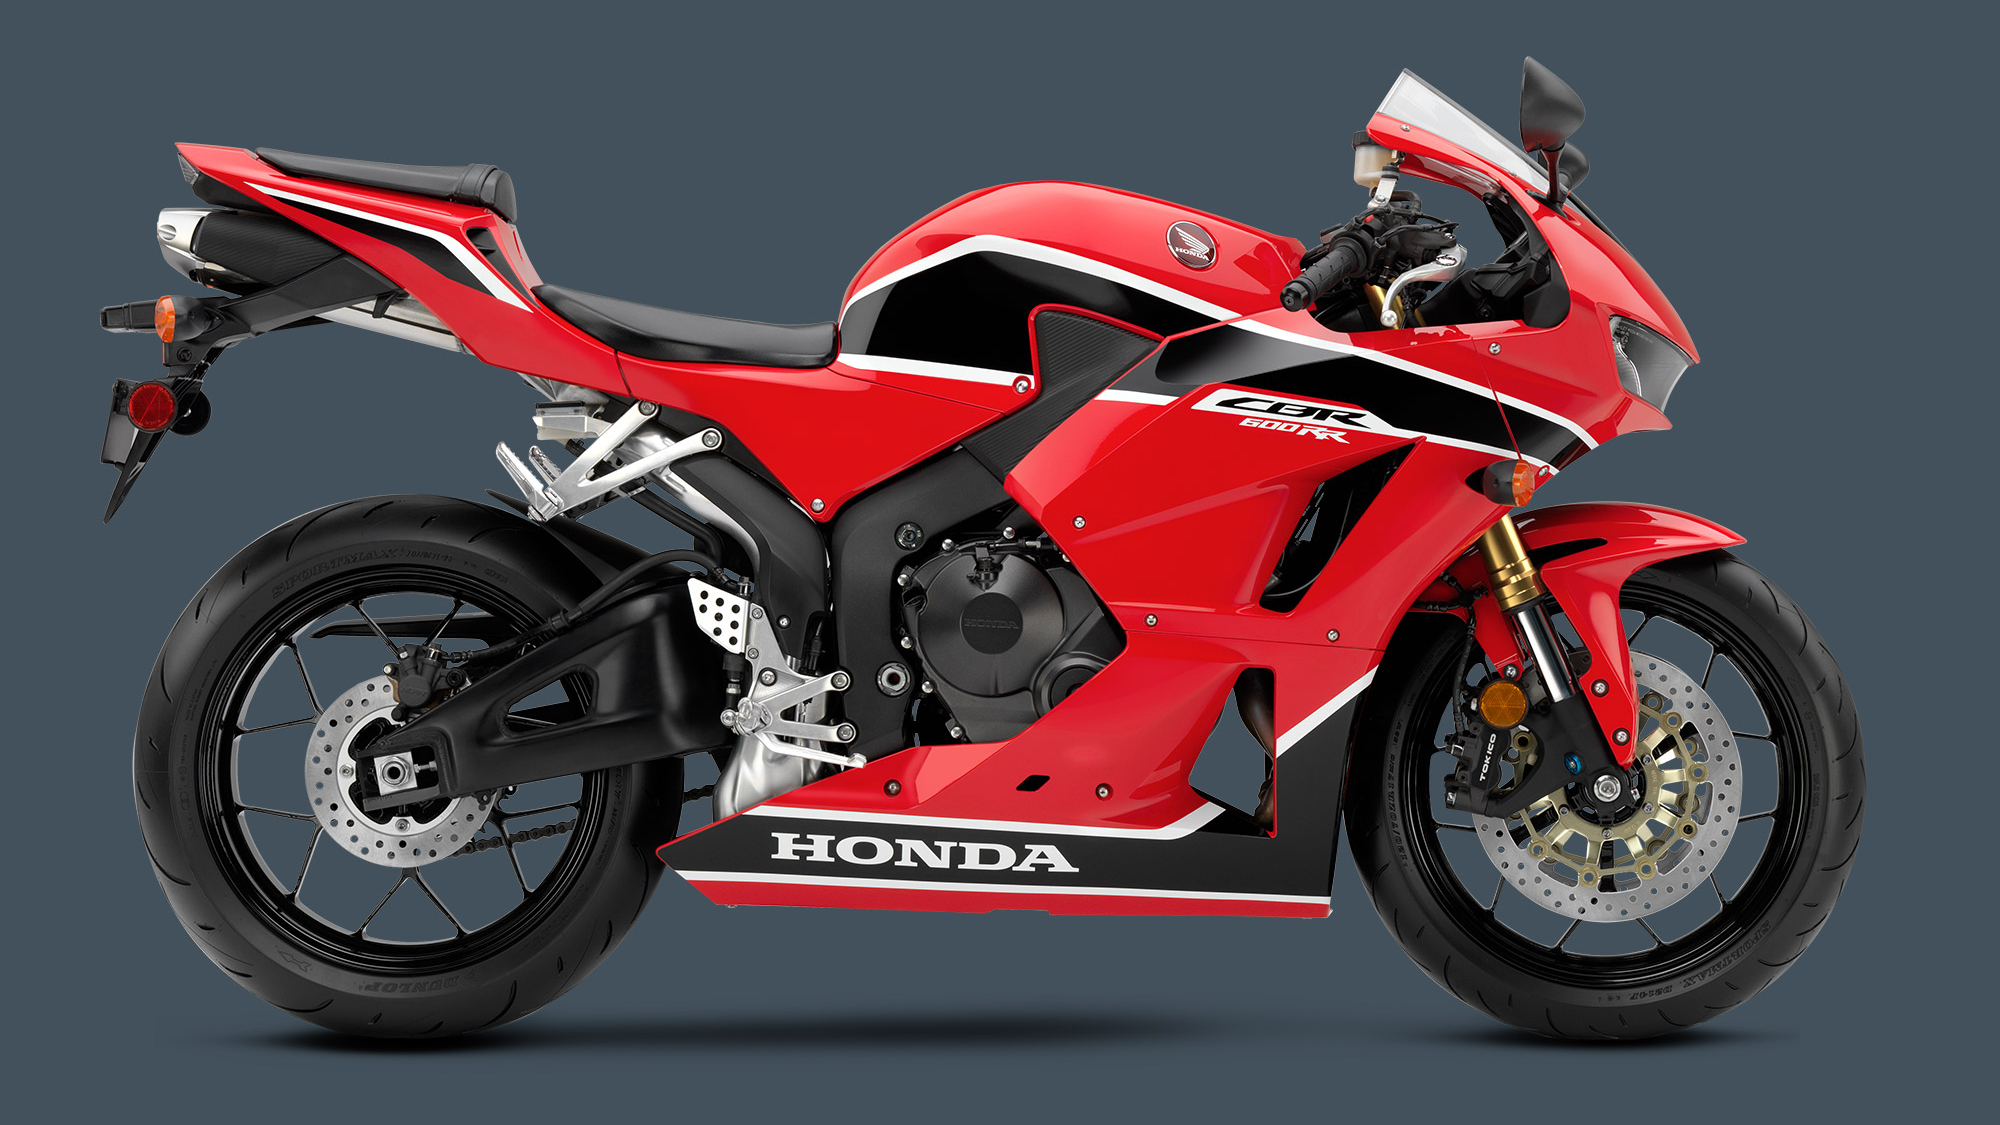 2014 2017 honda cbr600rr review gallery top speed. Black Bedroom Furniture Sets. Home Design Ideas